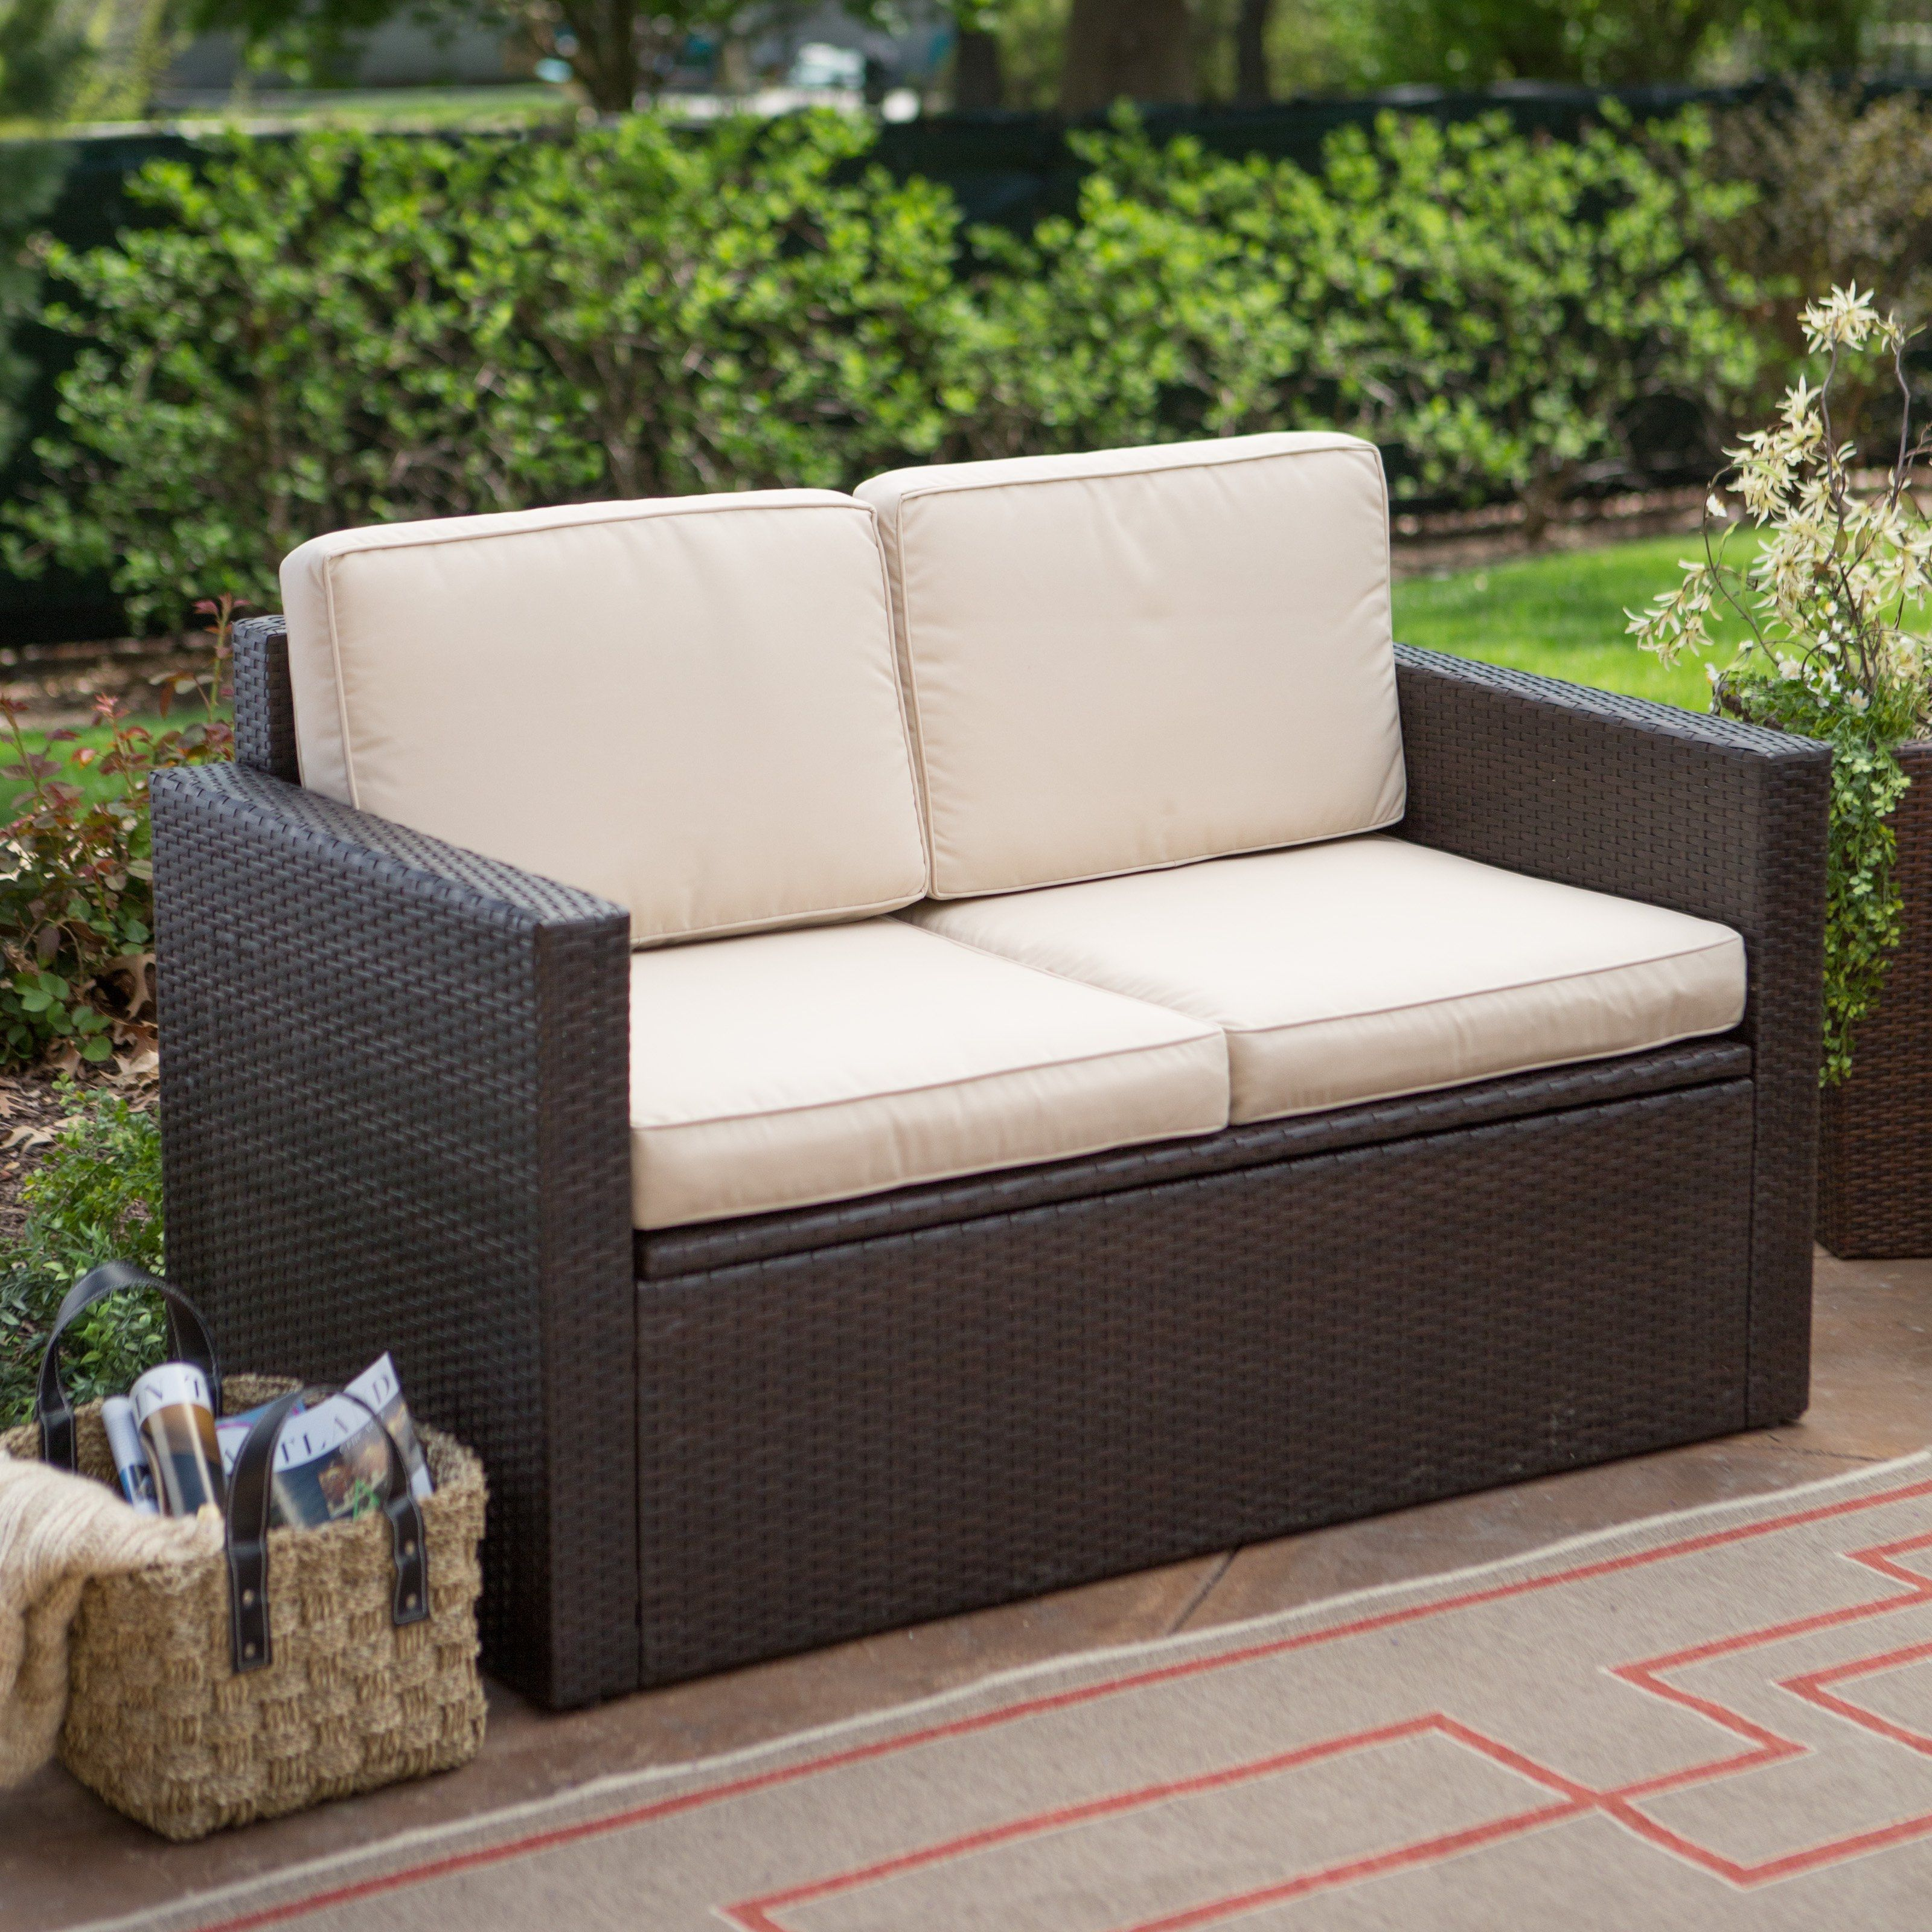 Resin Loveseat Patio Furniture Patio Decor Pinterest